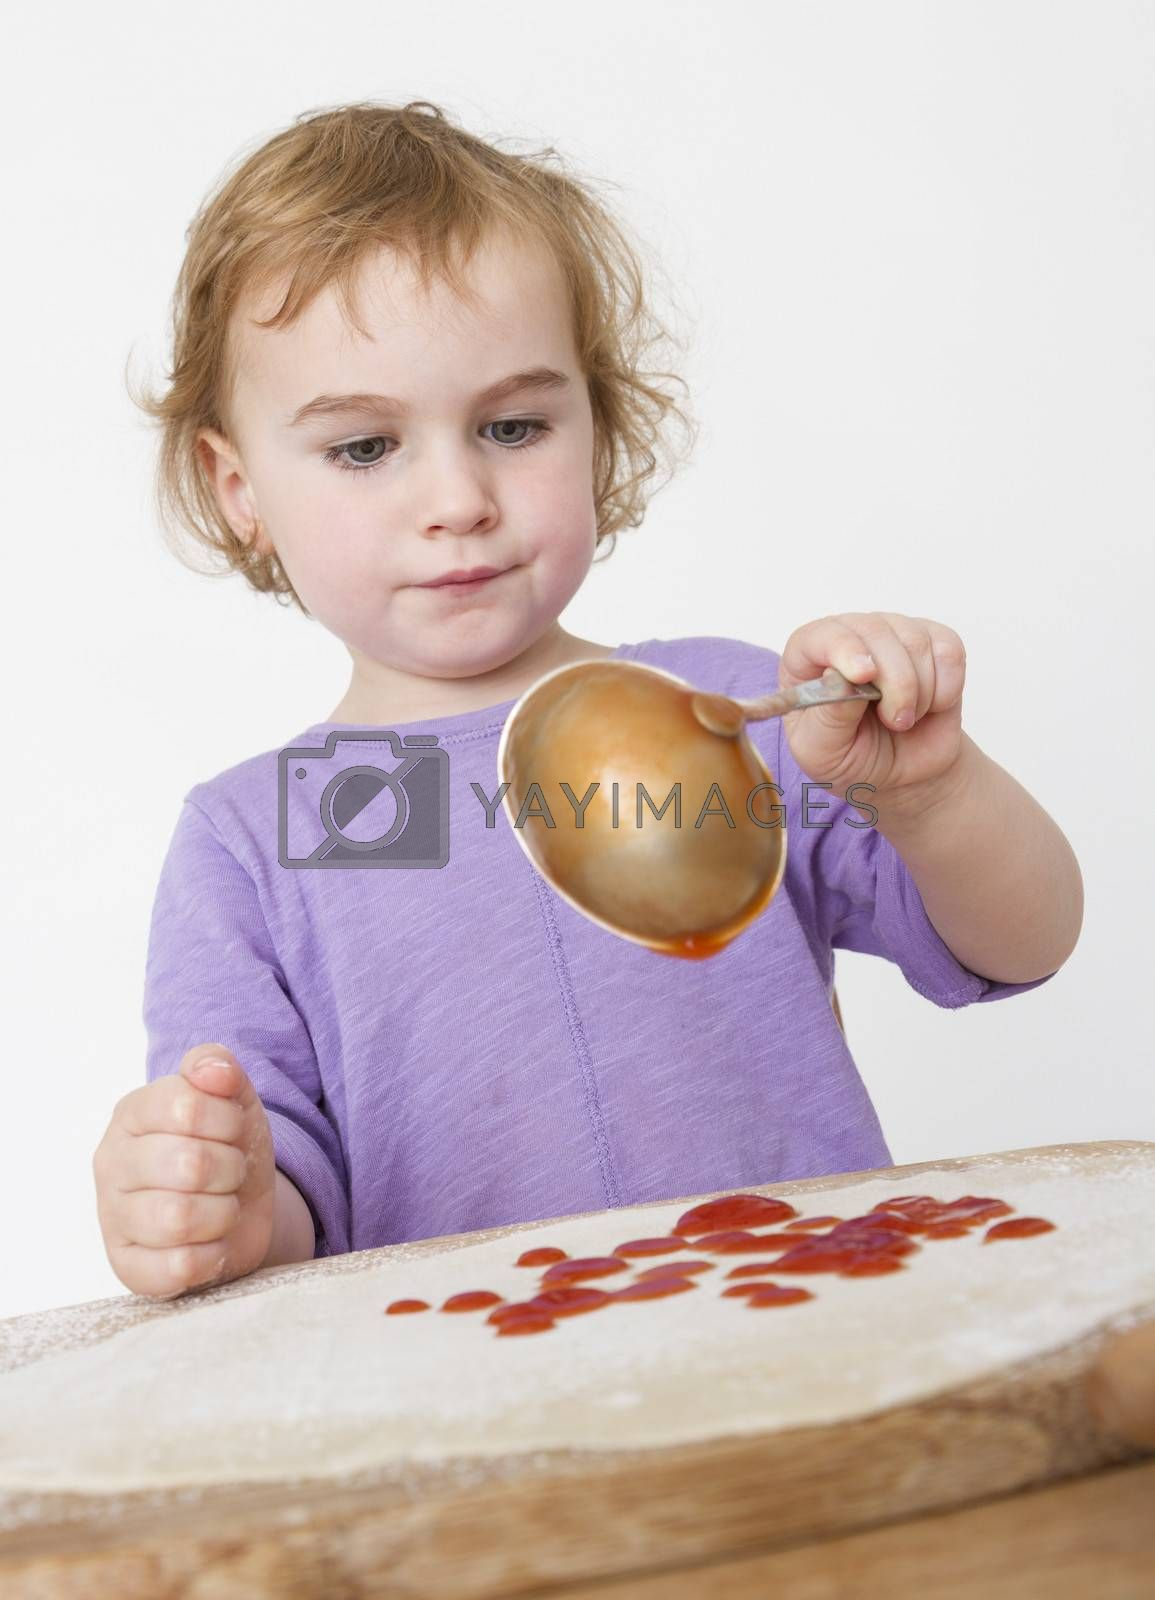 Royalty free image of child putting sieved tomatoes on dough by gewoldi